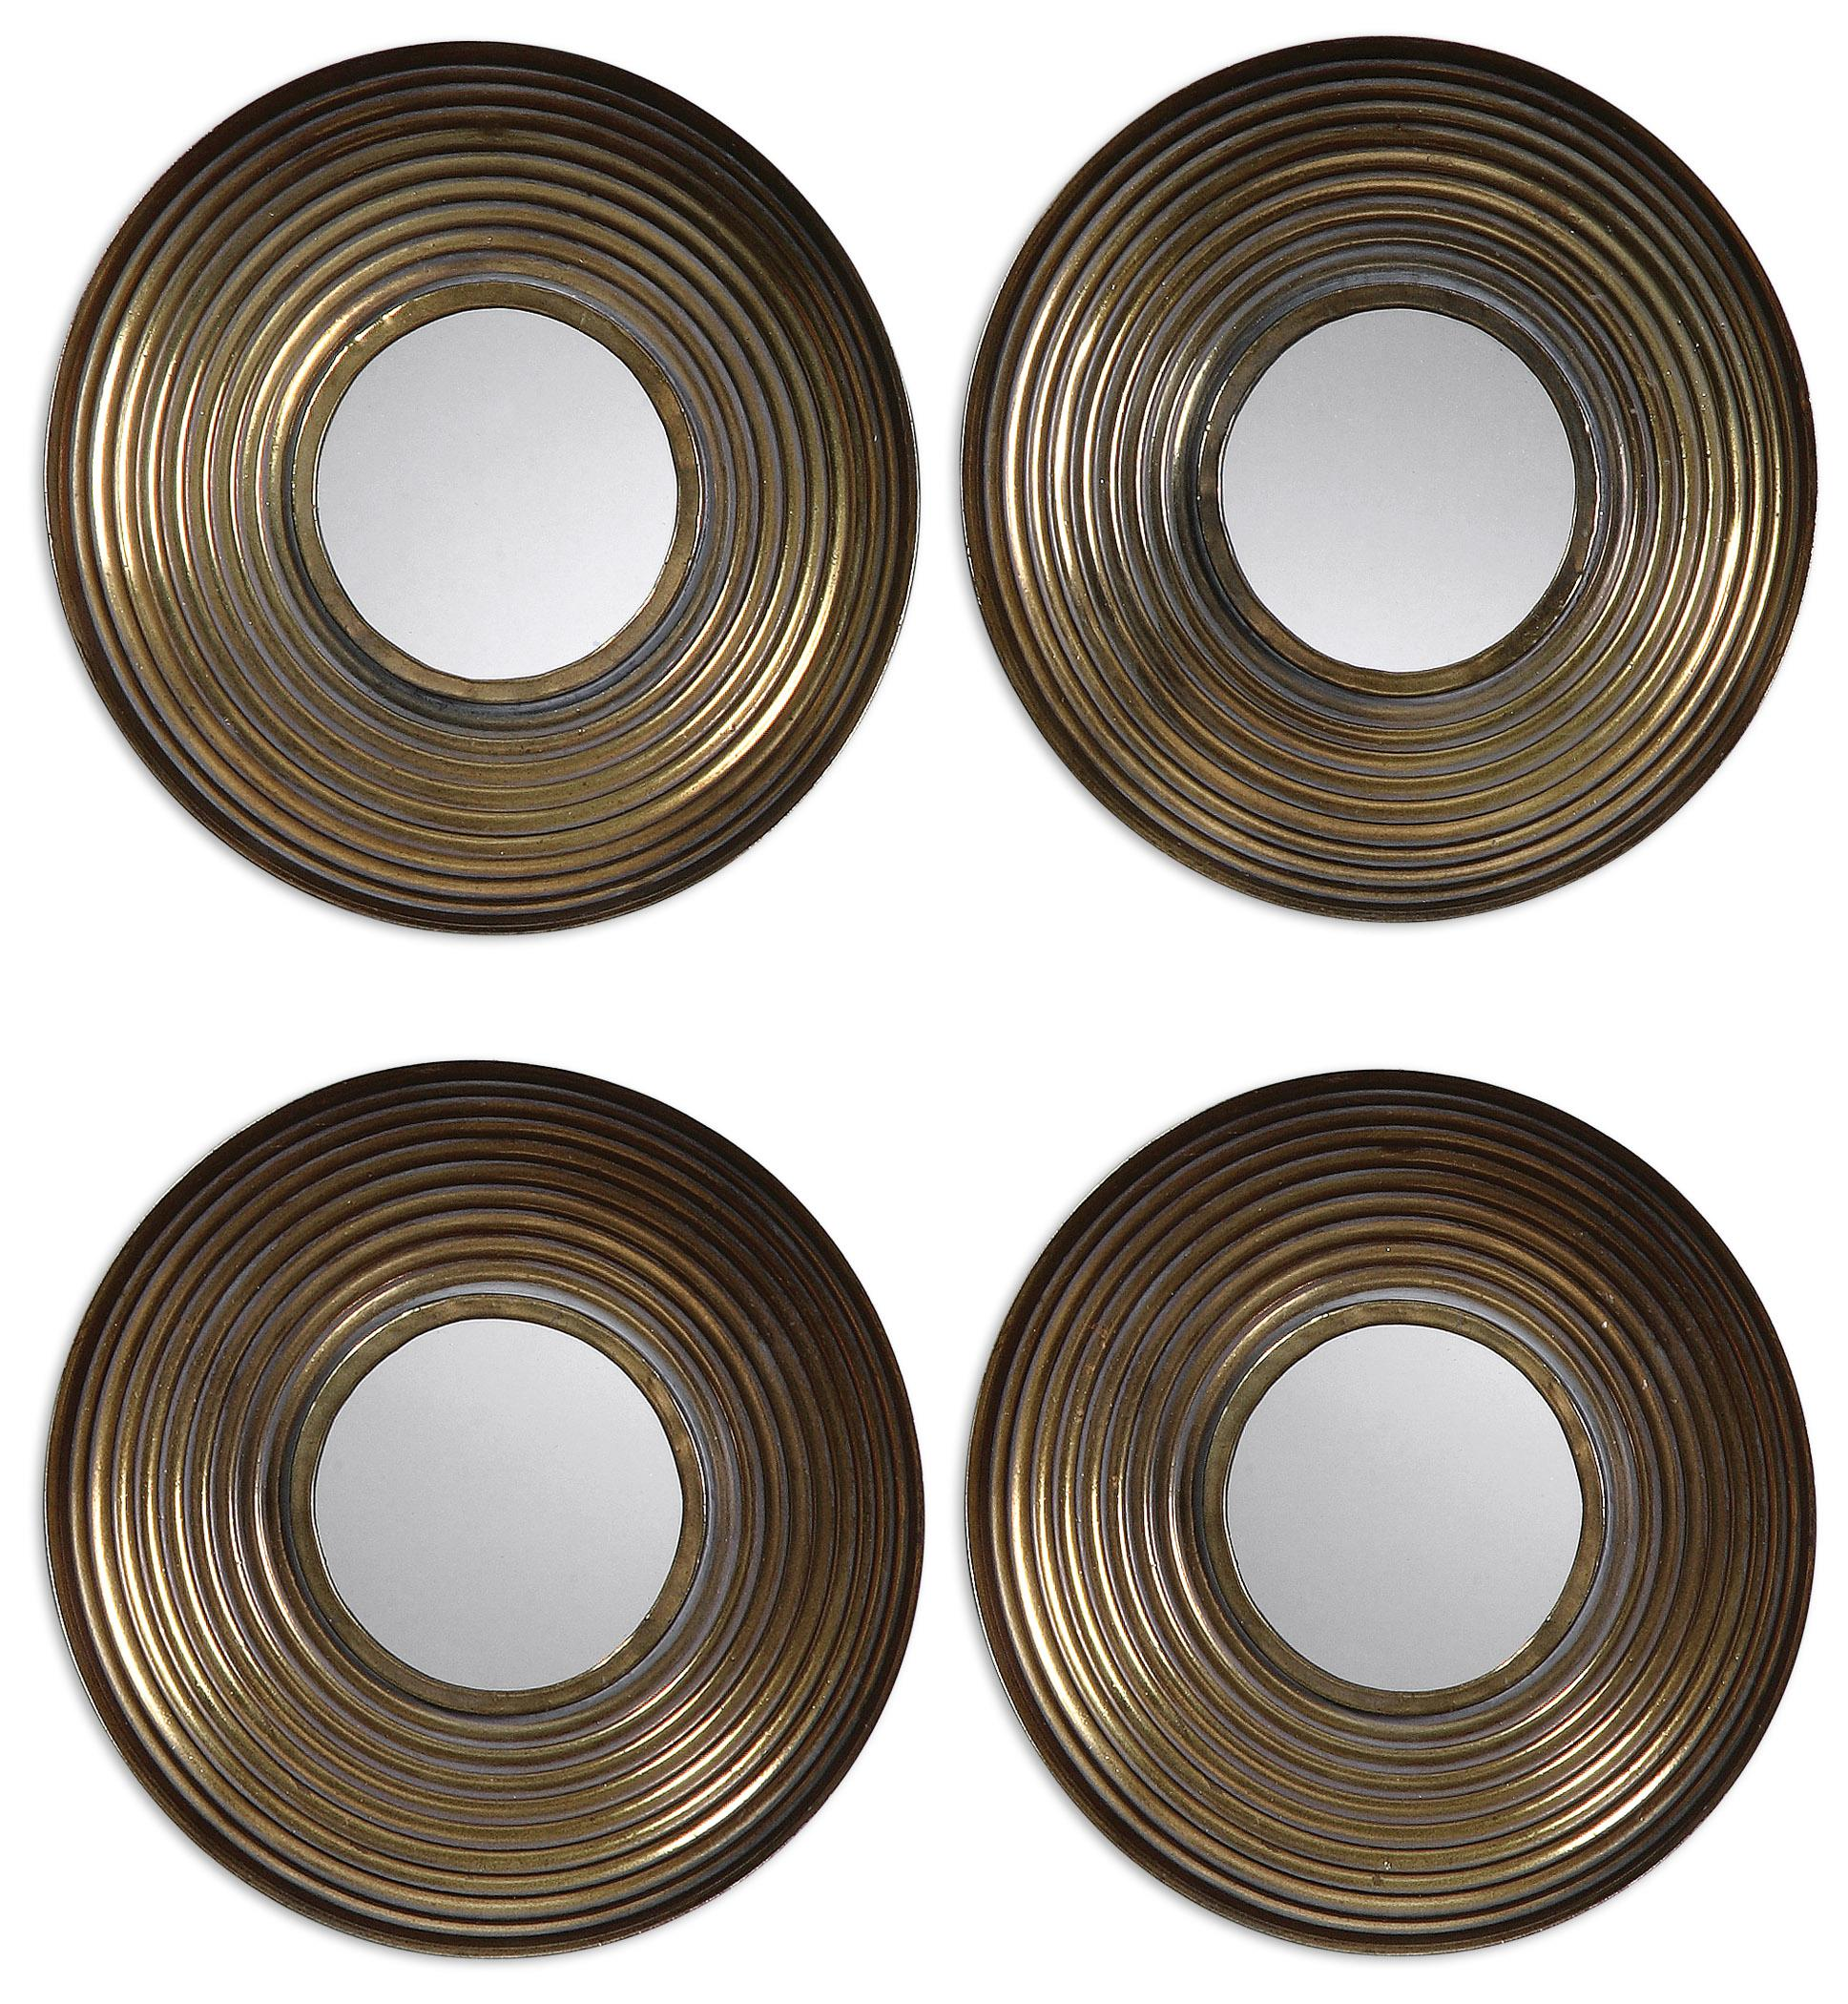 Uttermost Mirrors Tondela Round Mirrors Set of 4 - Item Number: 12858